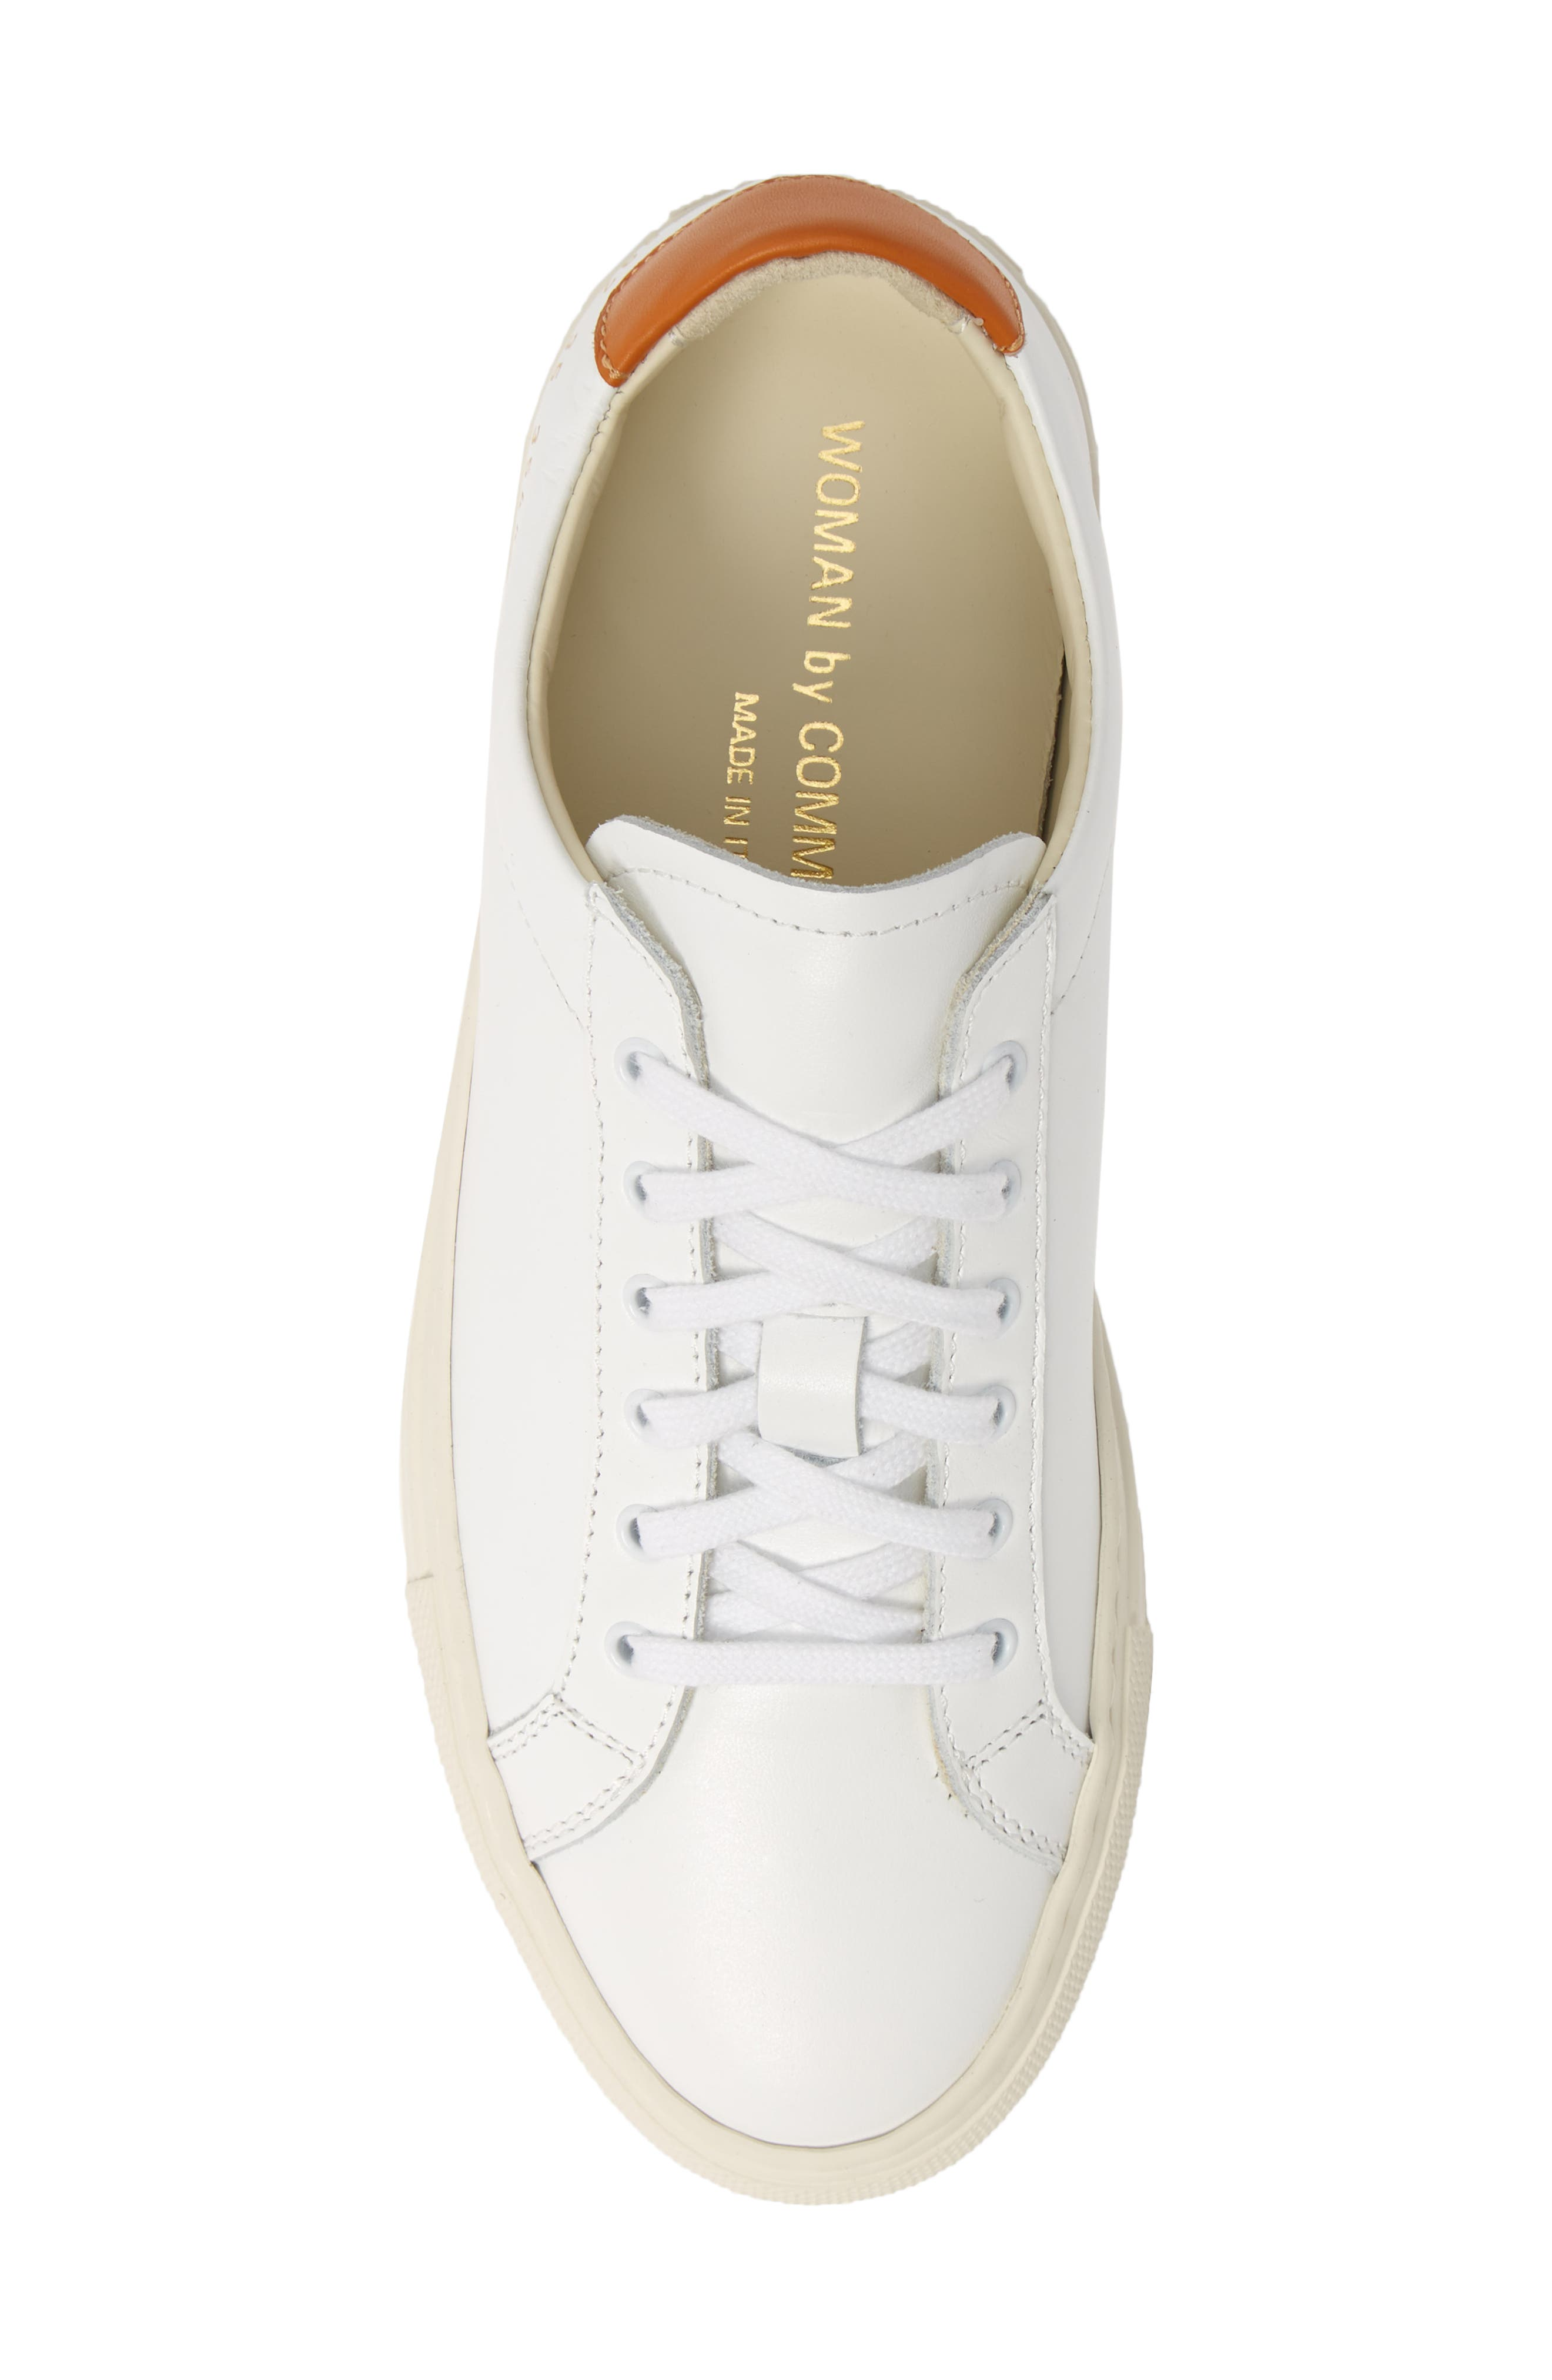 COMMON PROJECTS, Retro Low Top Sneaker, Alternate thumbnail 5, color, WHITE/ BROWN